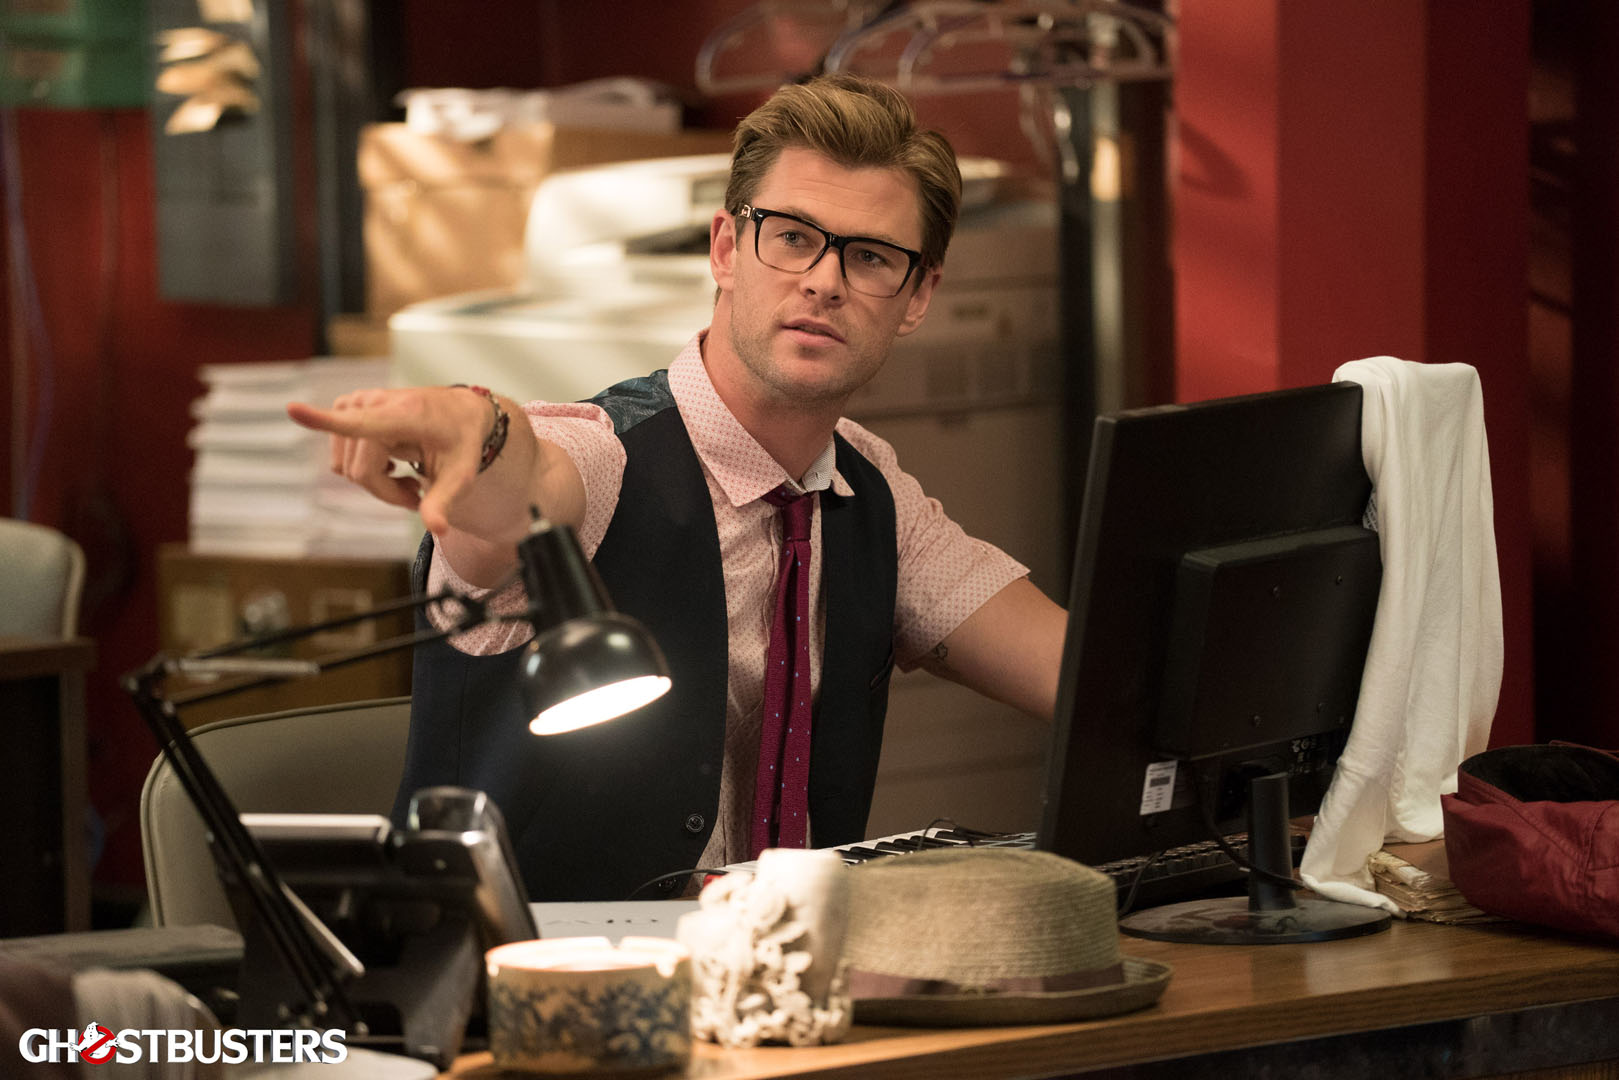 Ghostbusters: un'immagine di Chris Hemsworth